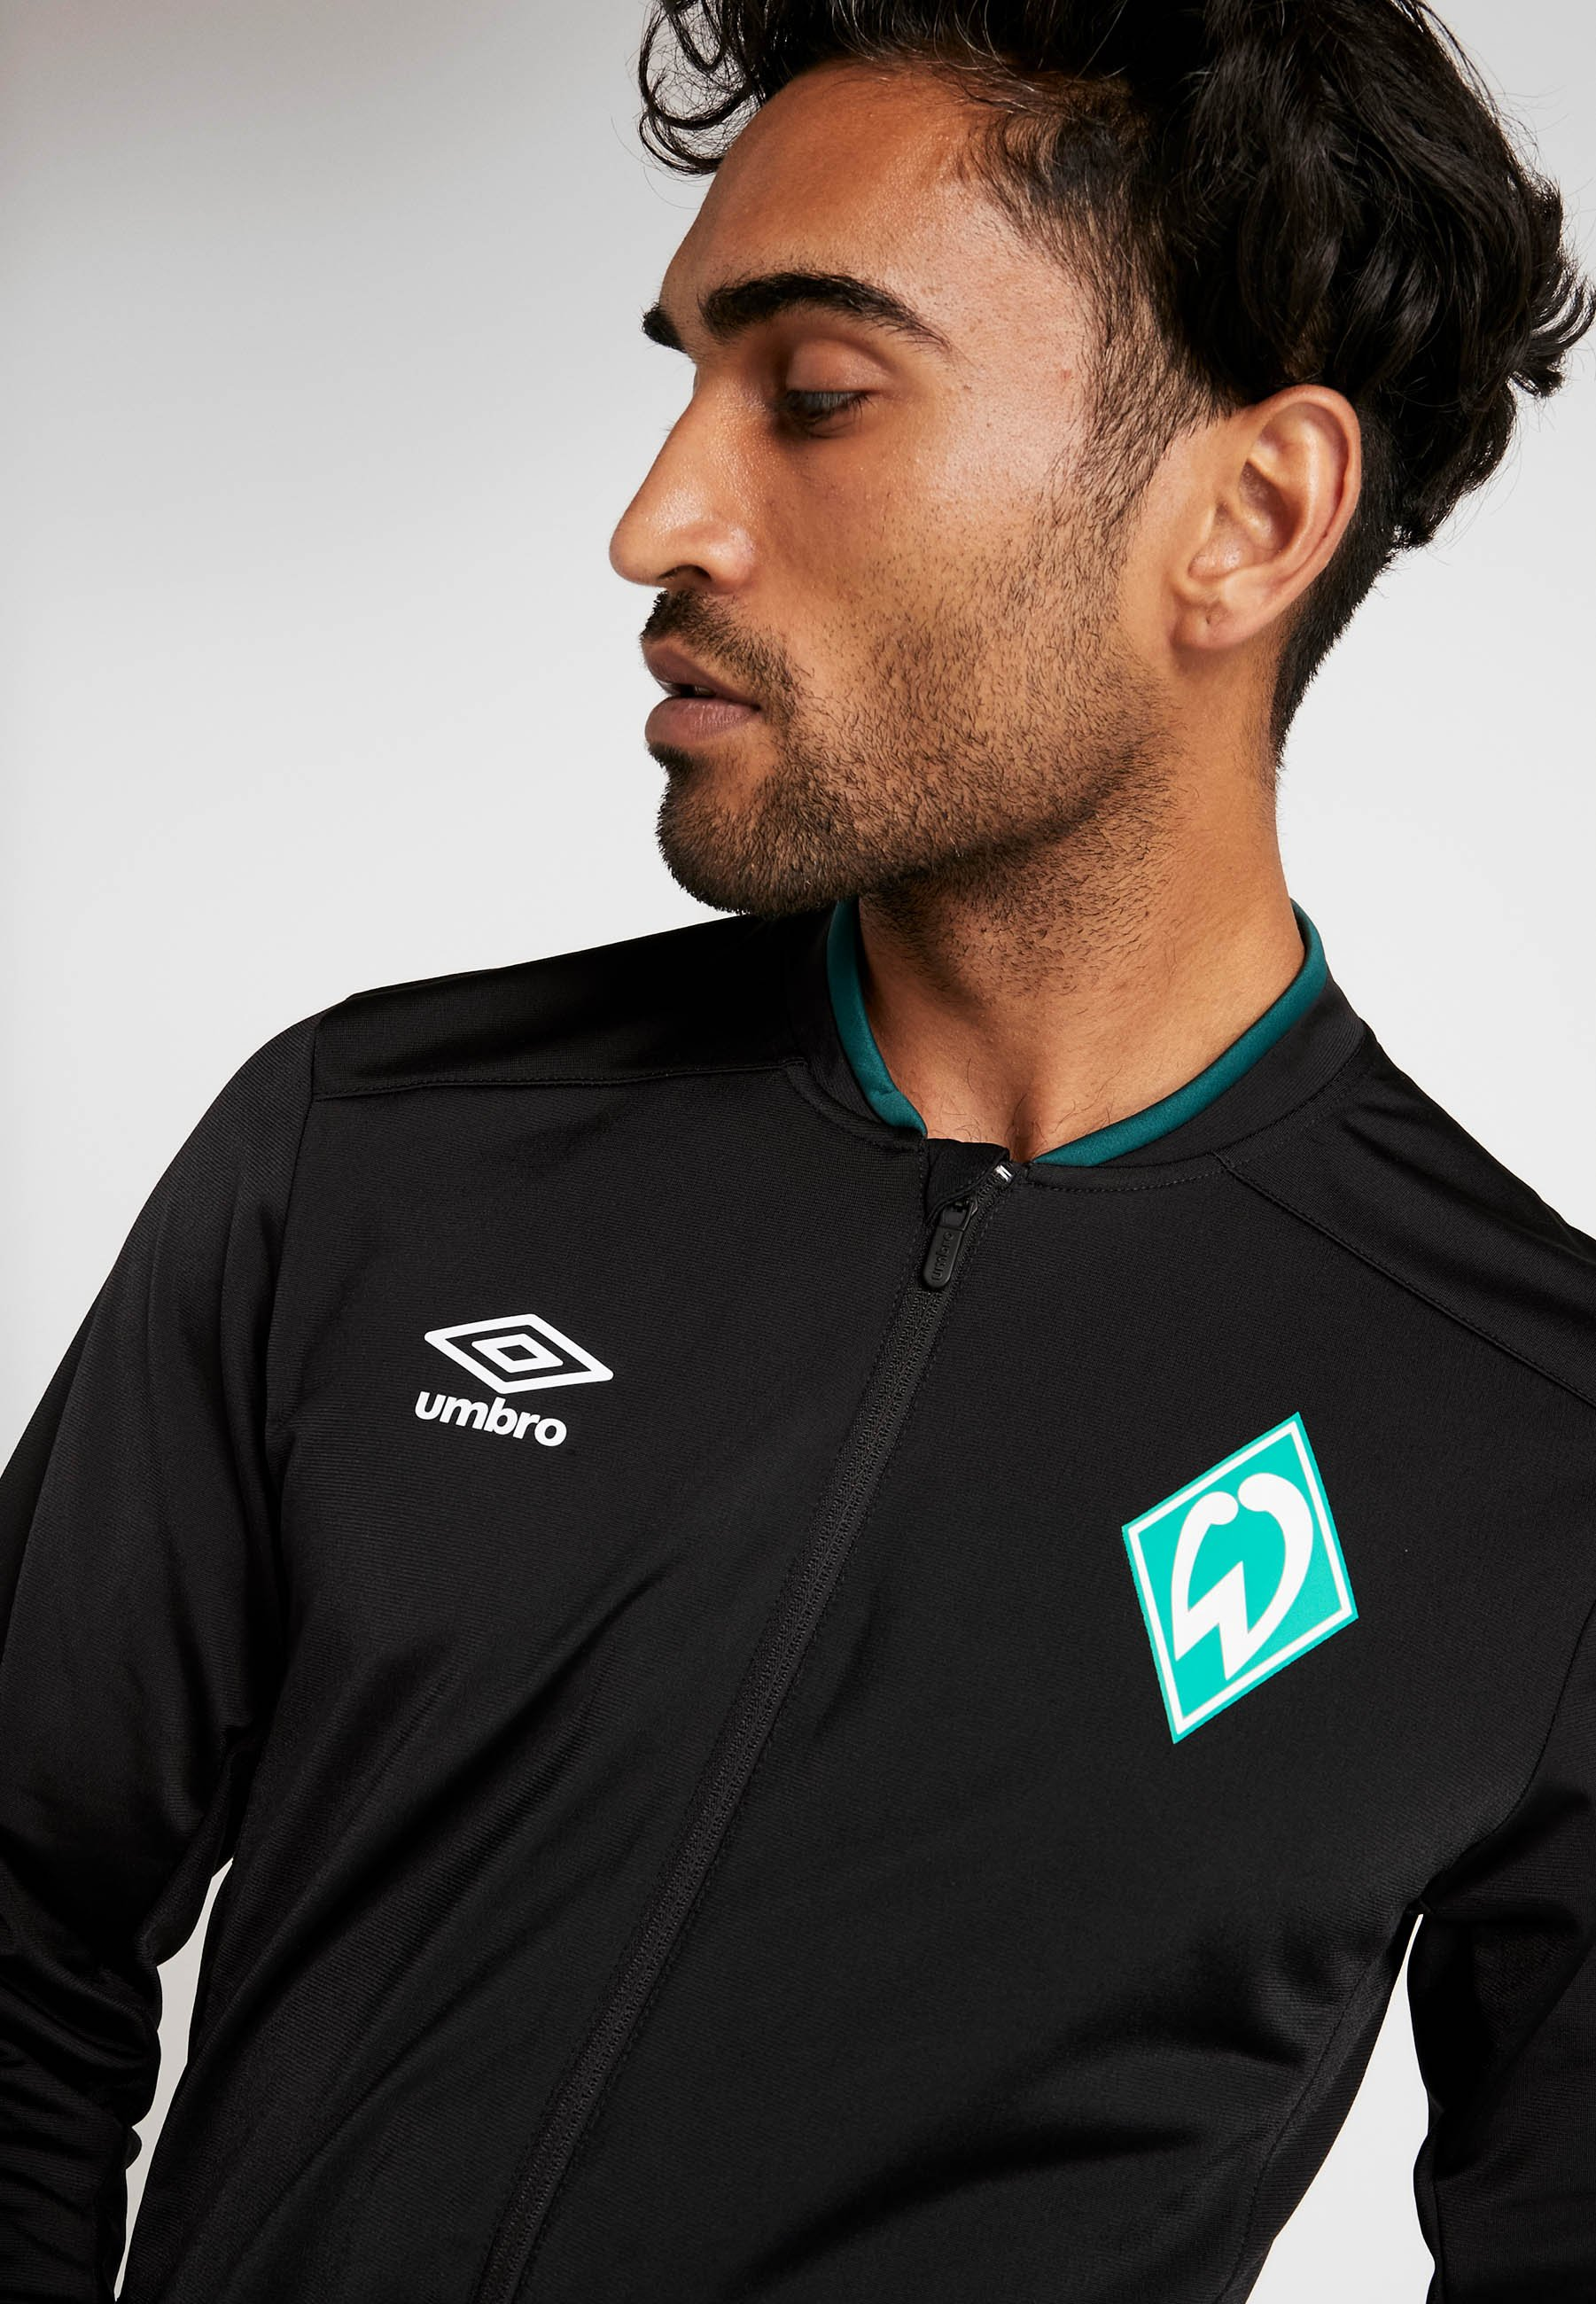 Black Bremen Umbro Bug SetSurvêtement june Werder Suit sdthCQr